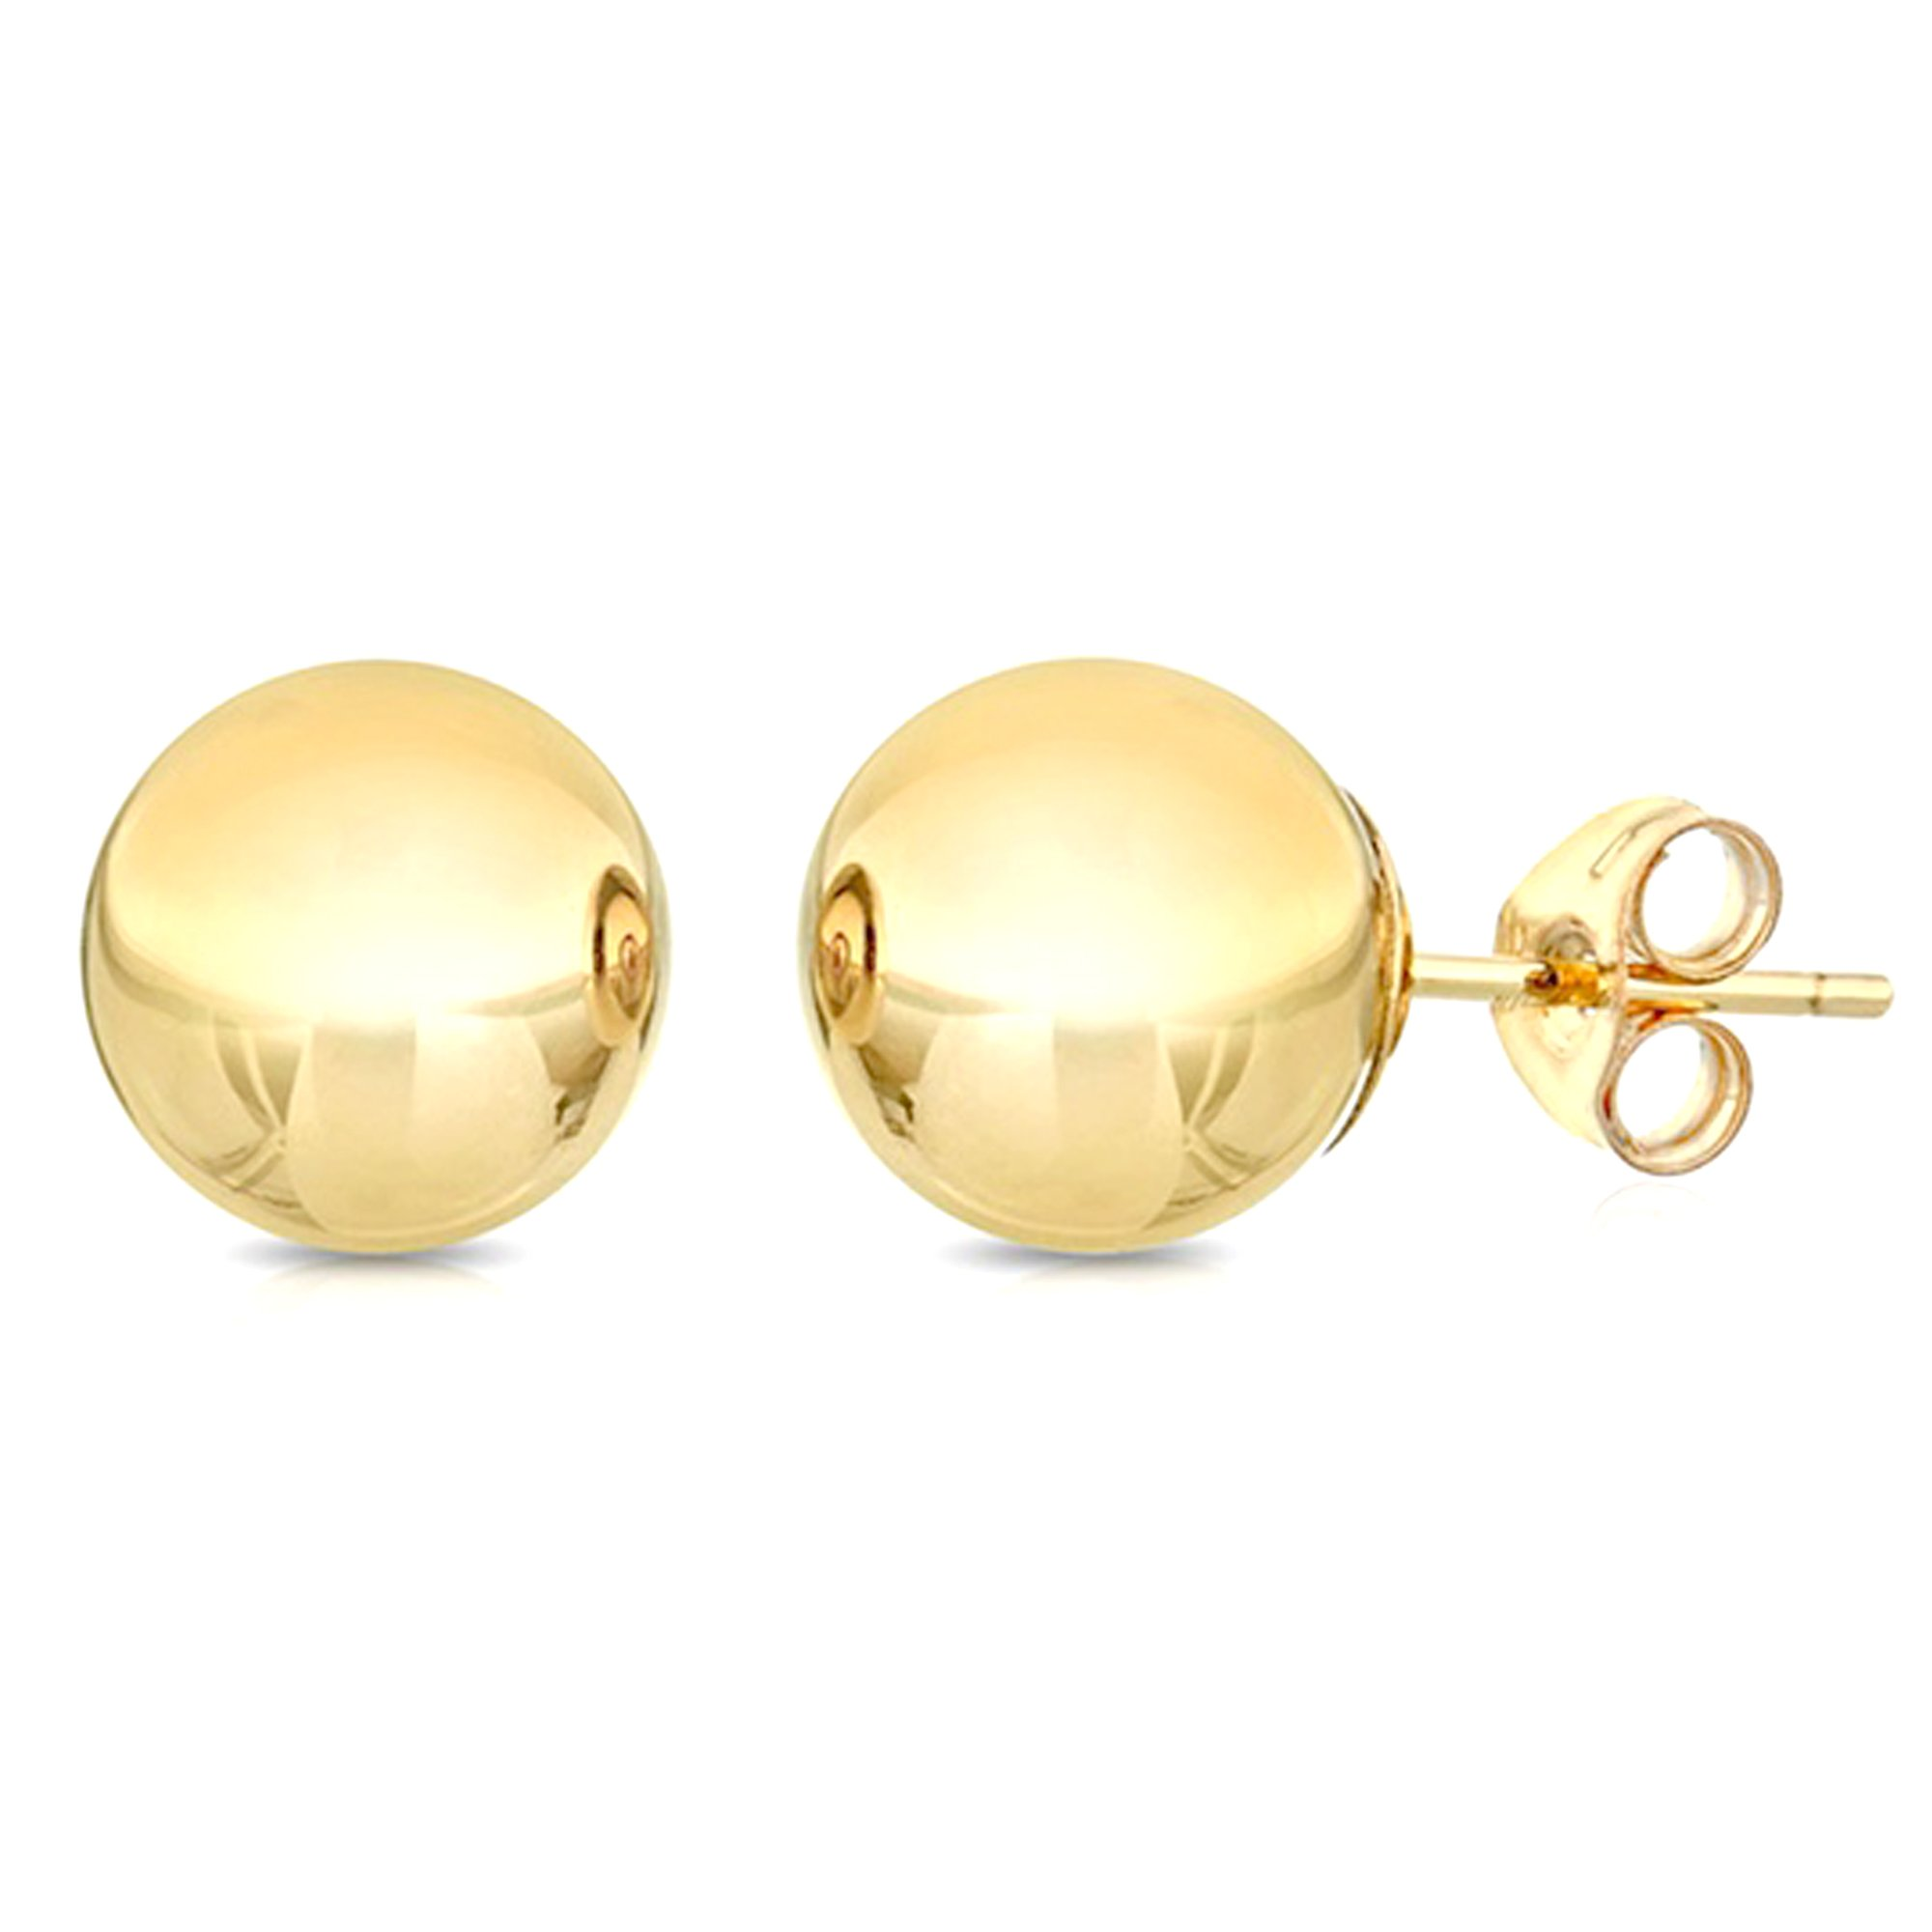 14K Yellow Gold Ball Stud Earrings, 10mm